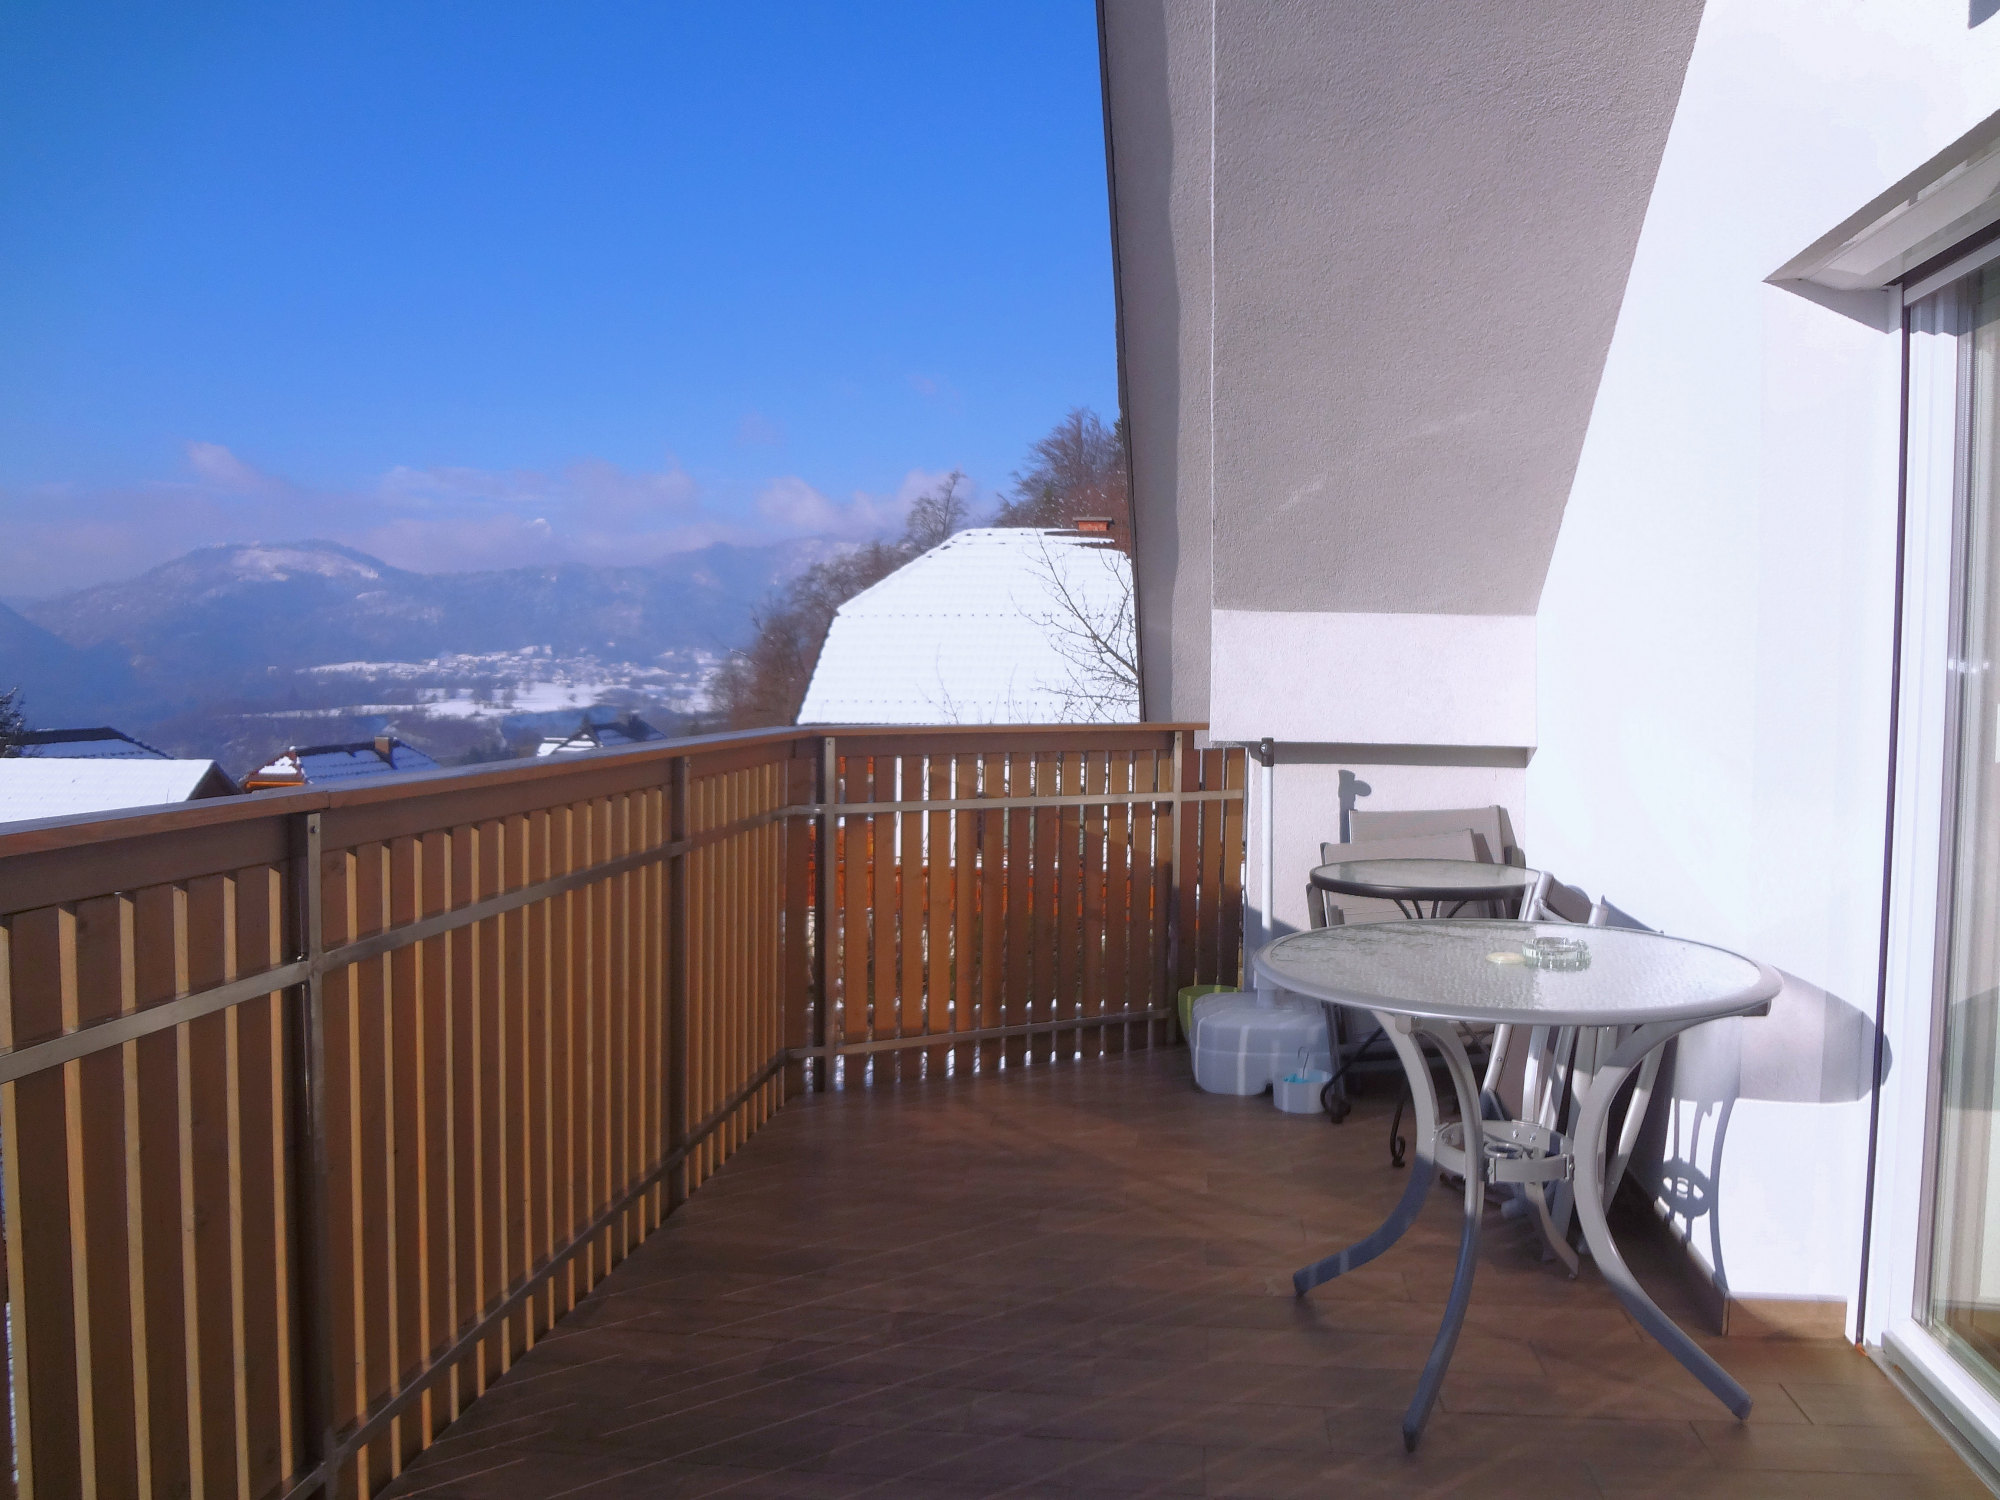 A view of the Slovenian Alps from the balcony of Apartments Fine Stay Apartments in winter